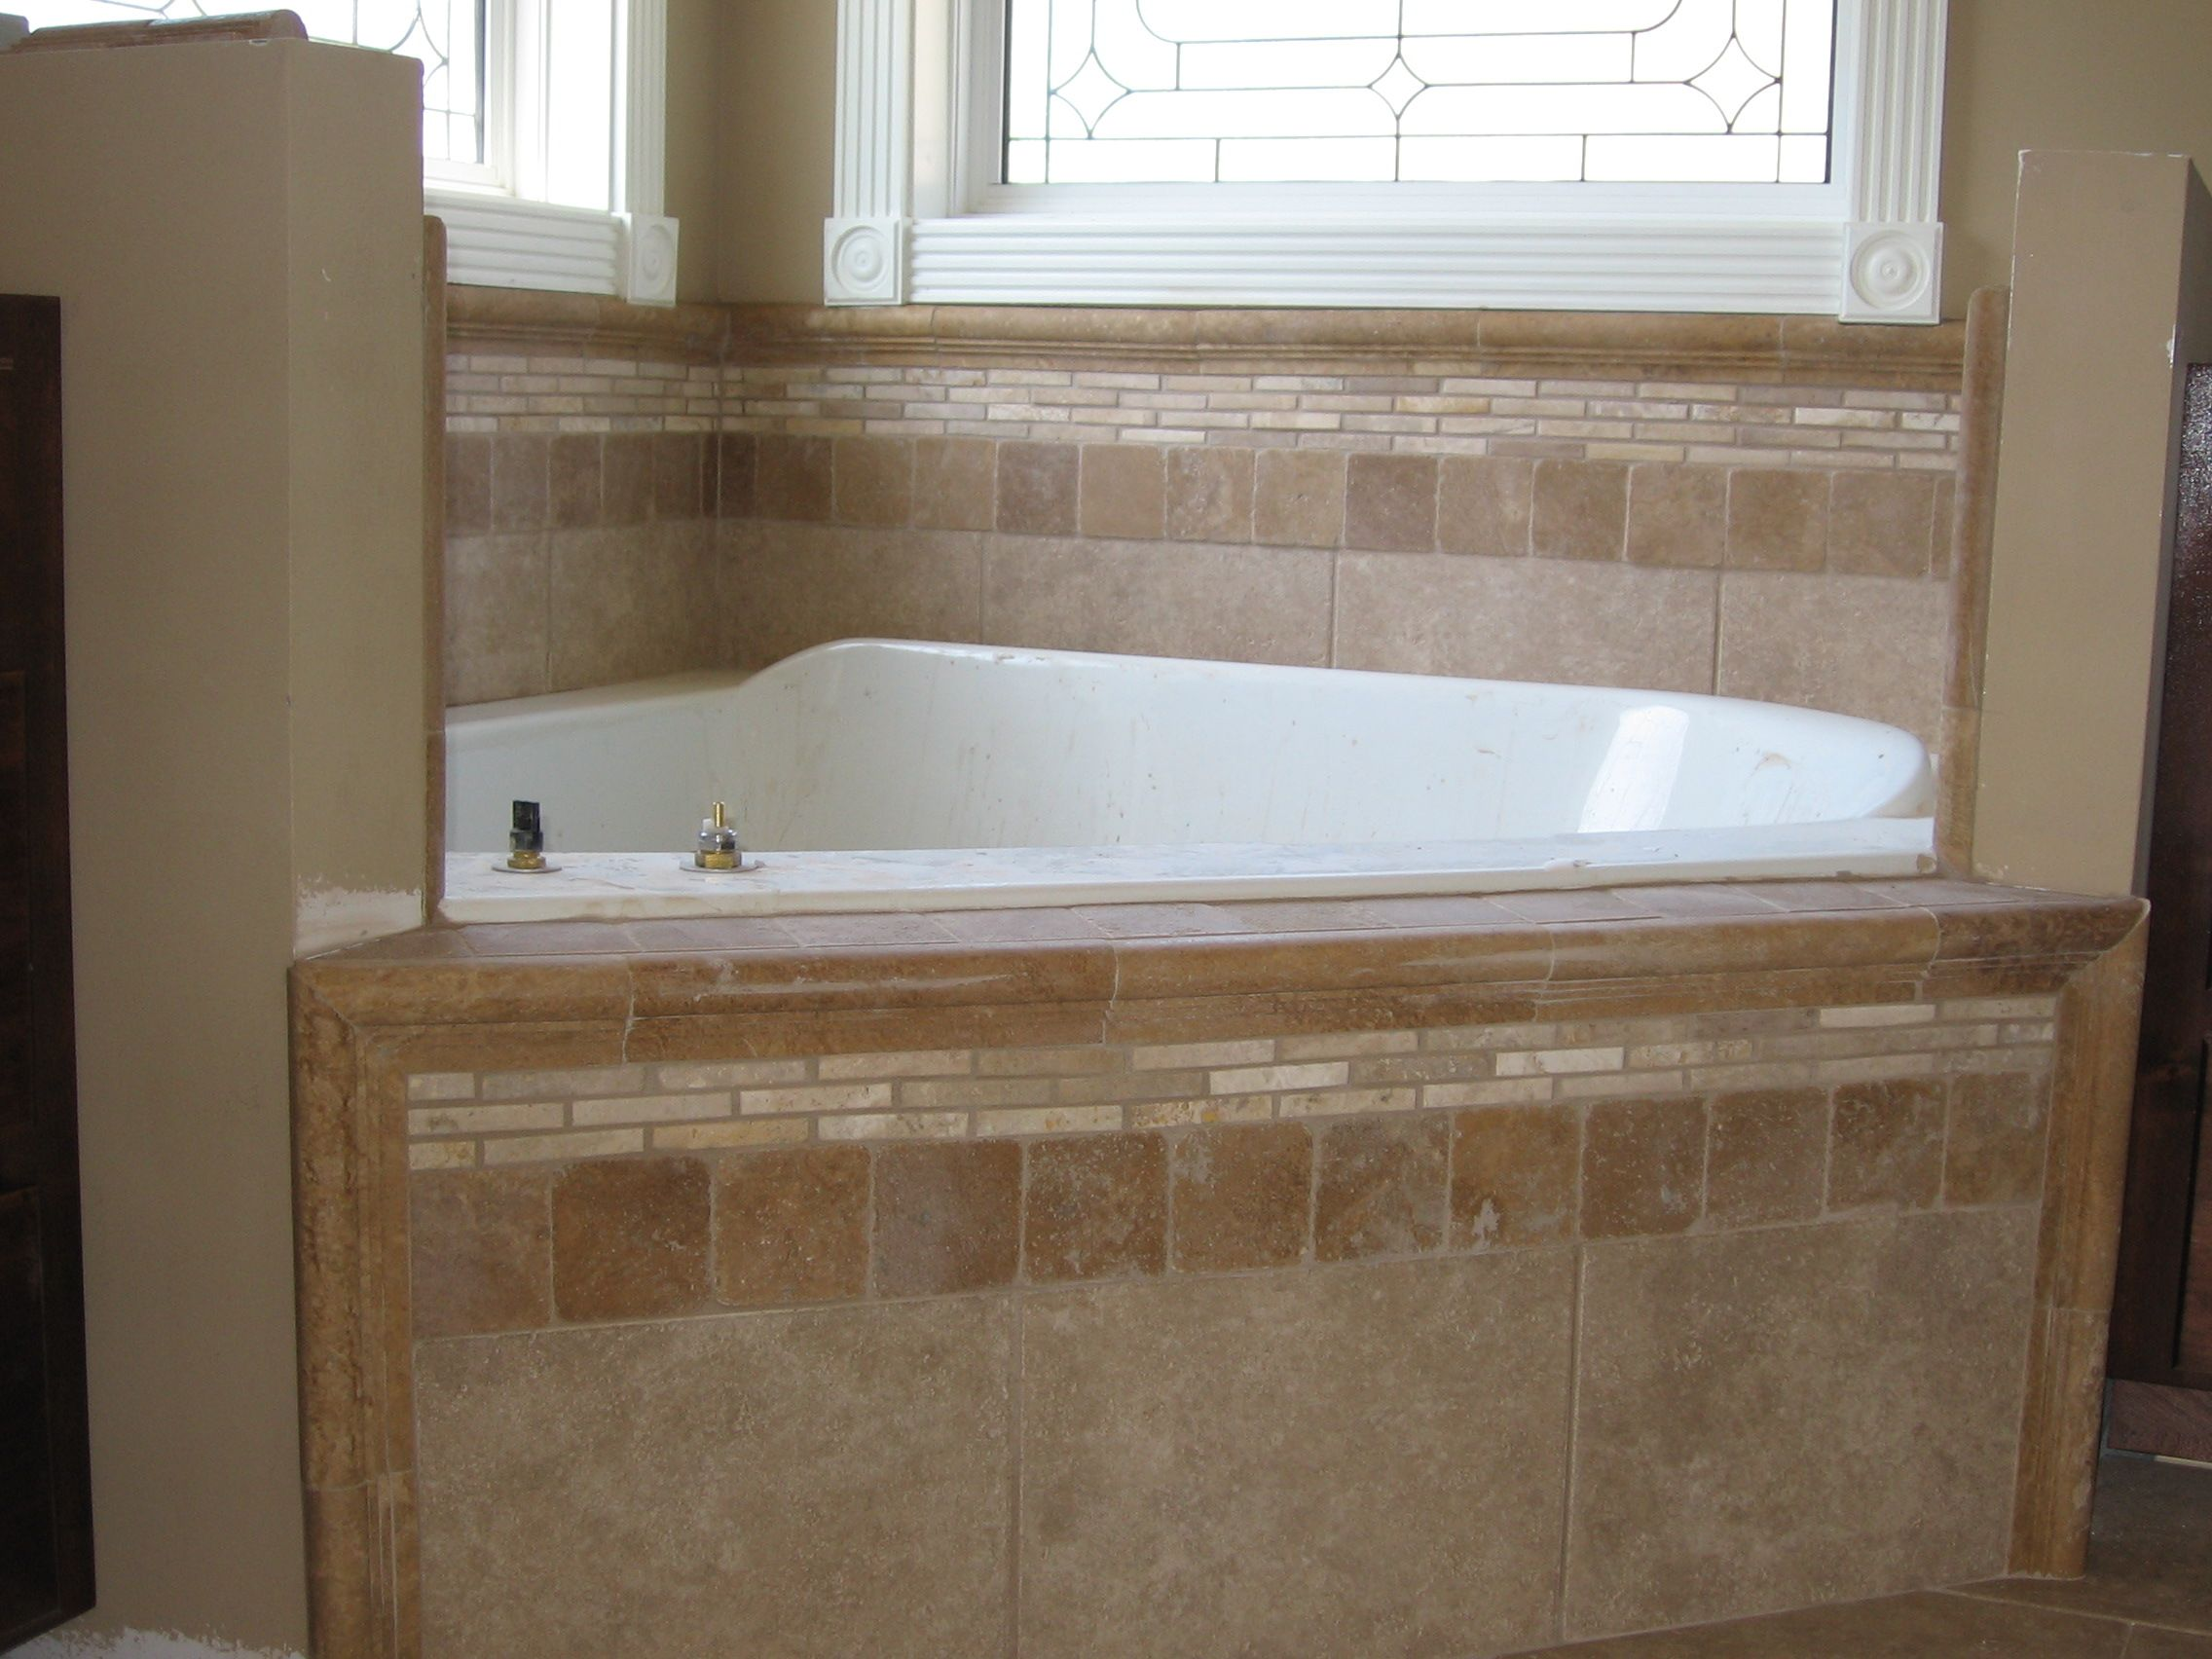 Soakertub Backsplash Custom Tile Work On A Master Garden Tub In